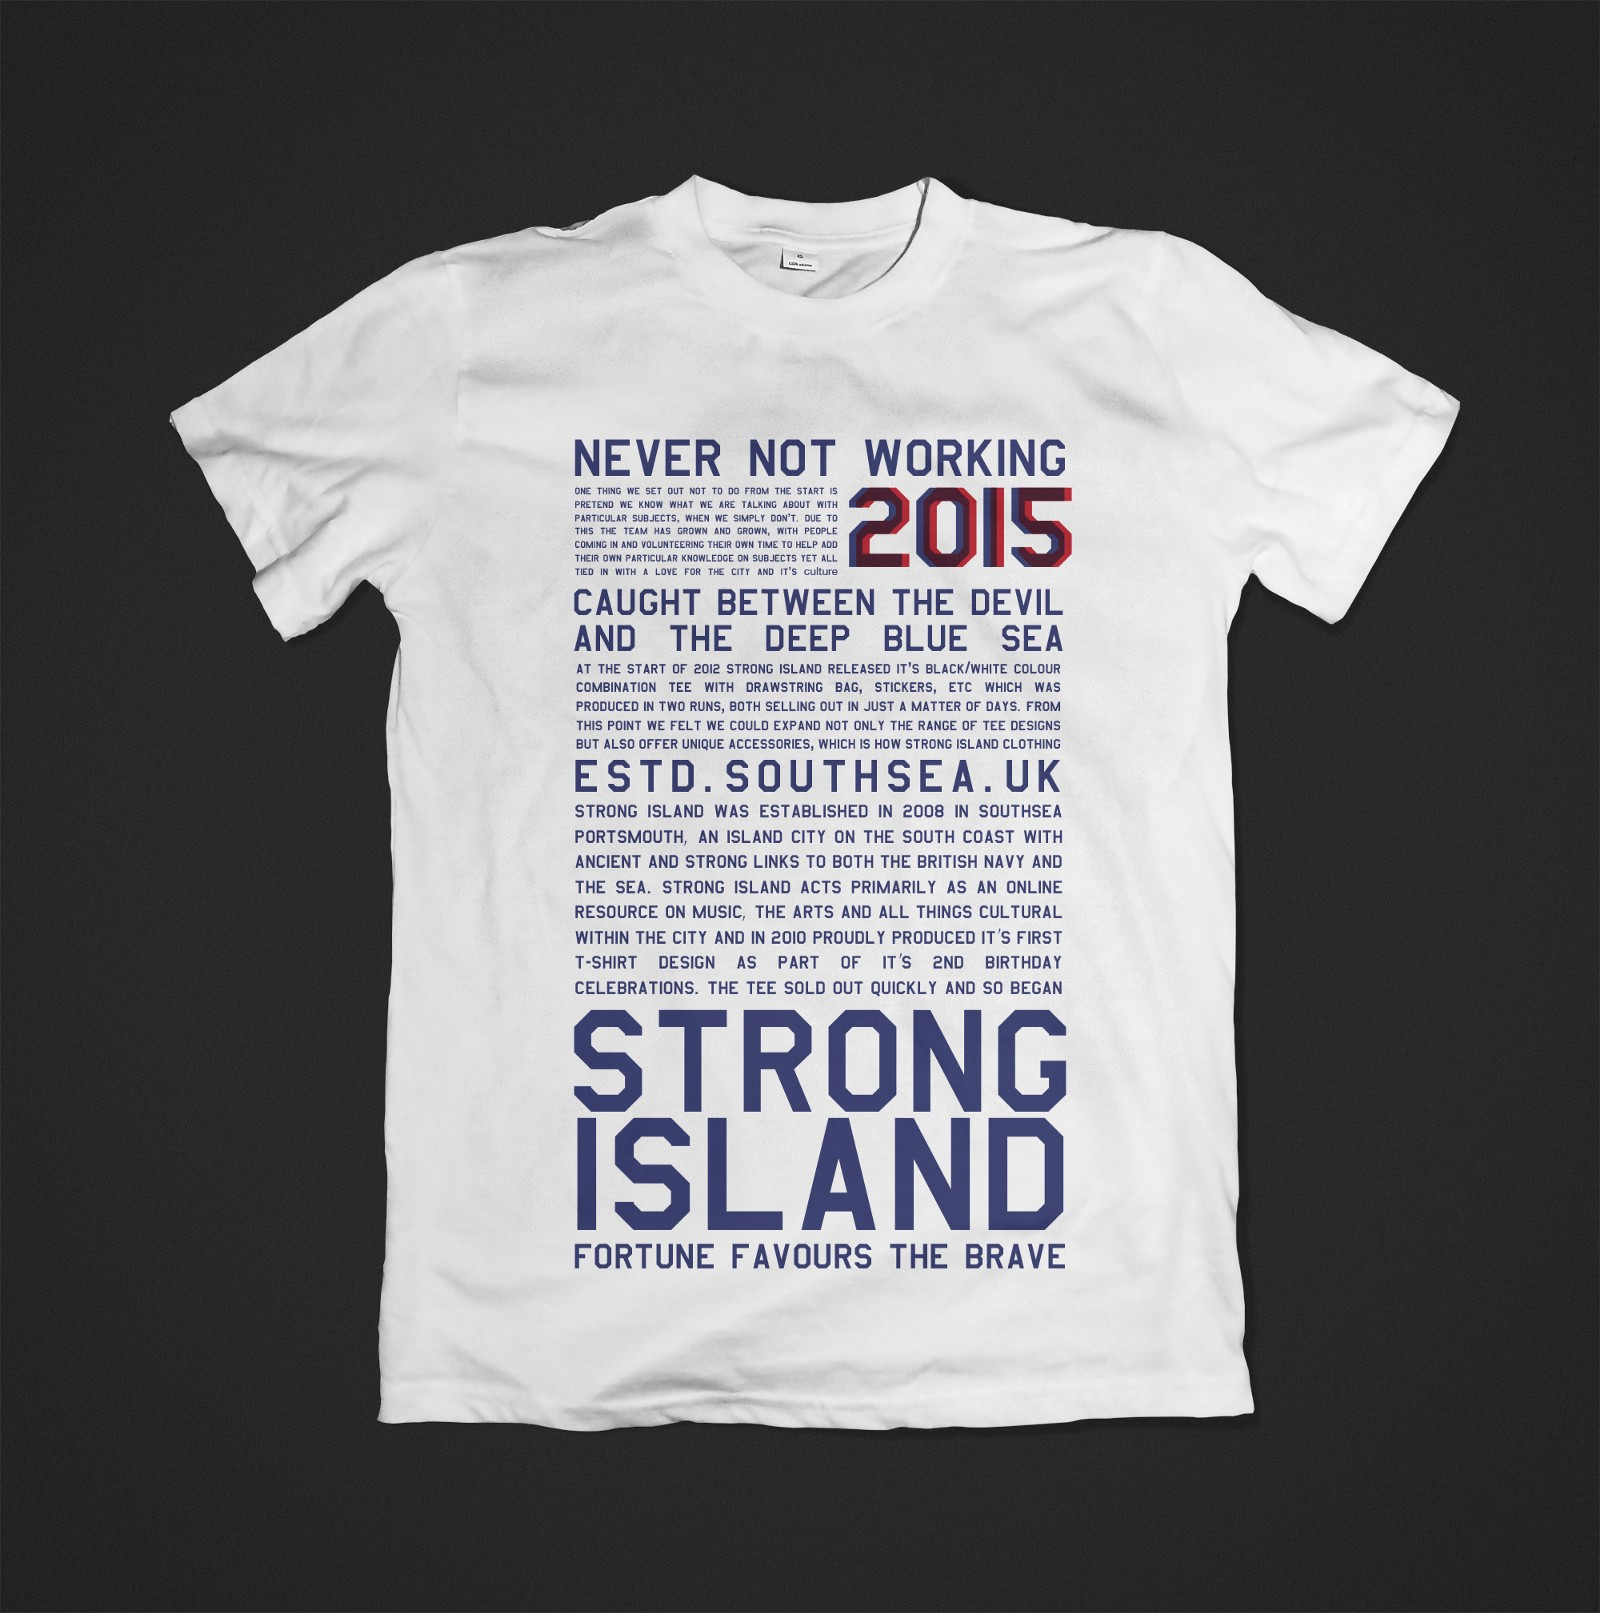 d0dfa1a1 Fast T Shirt Printing & Embroidery specialists - London .